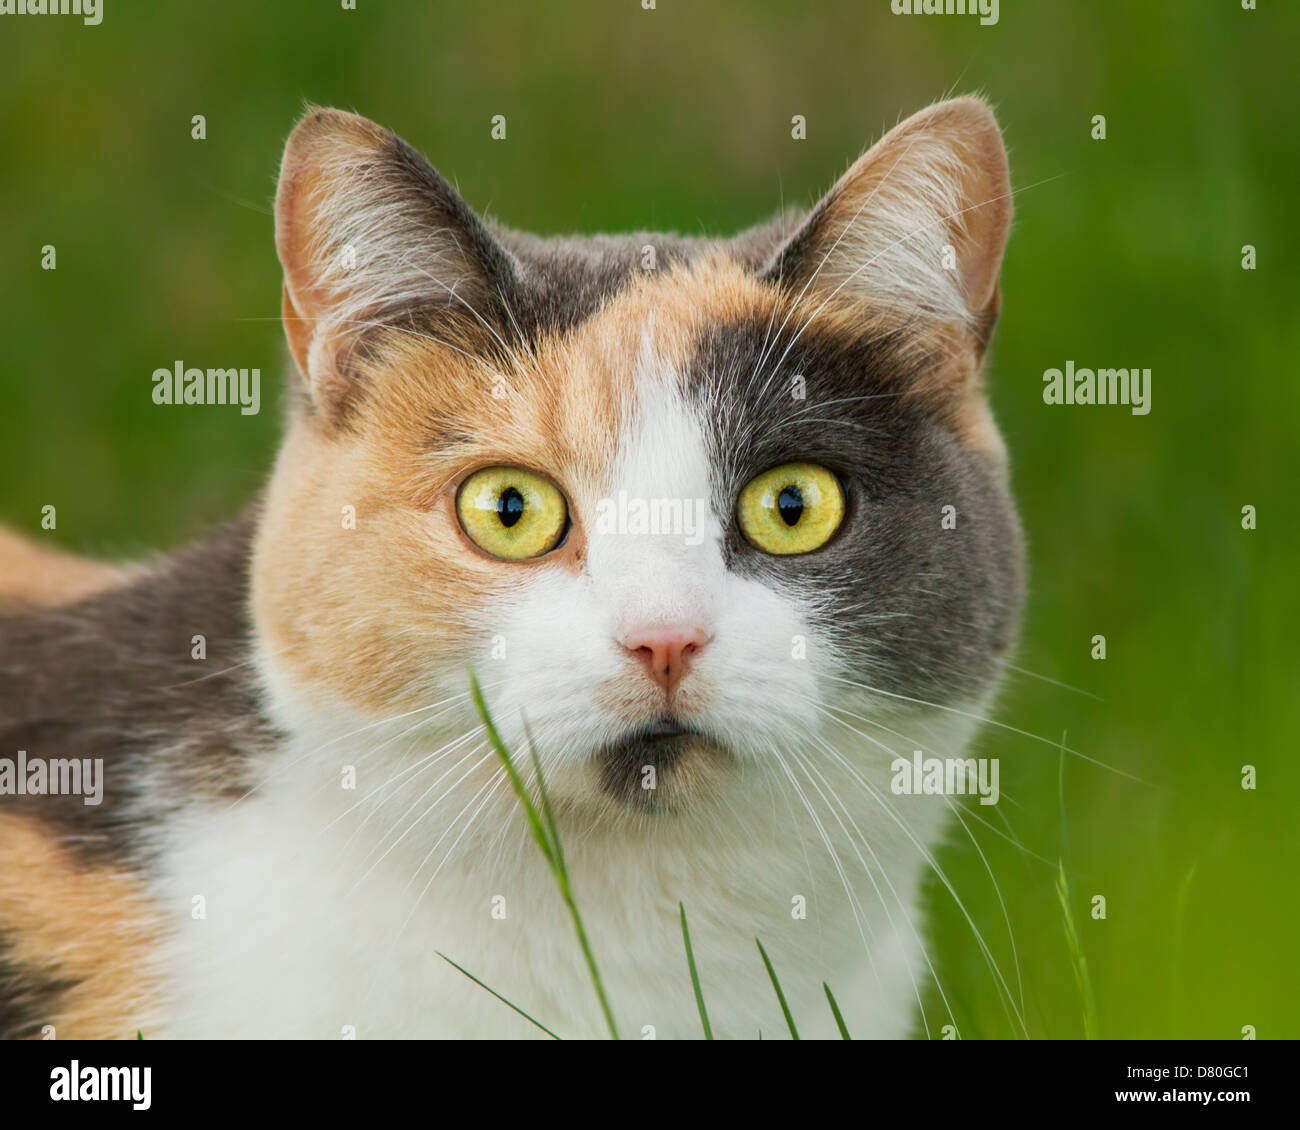 Arbre chat couleur spectaculaire portrait in grass Photo Stock